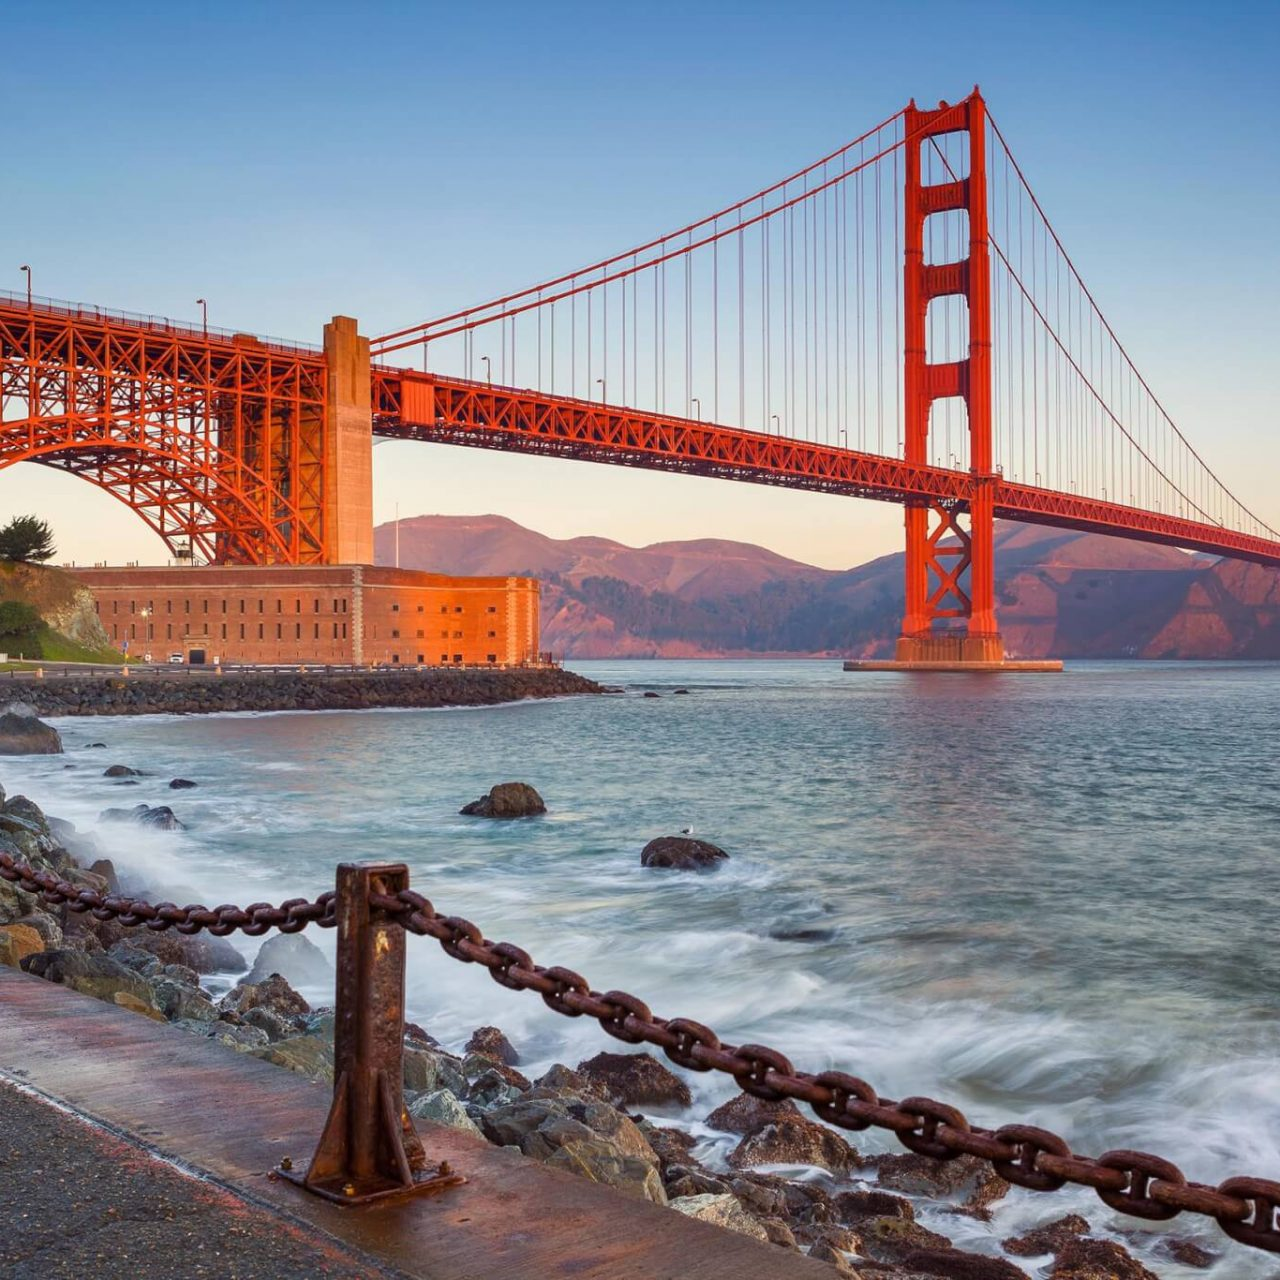 http://travelicious.bold-themes.com/main-demo/wp-content/uploads/sites/2/2018/09/destination-san-francisco-01-1280x1280.jpg